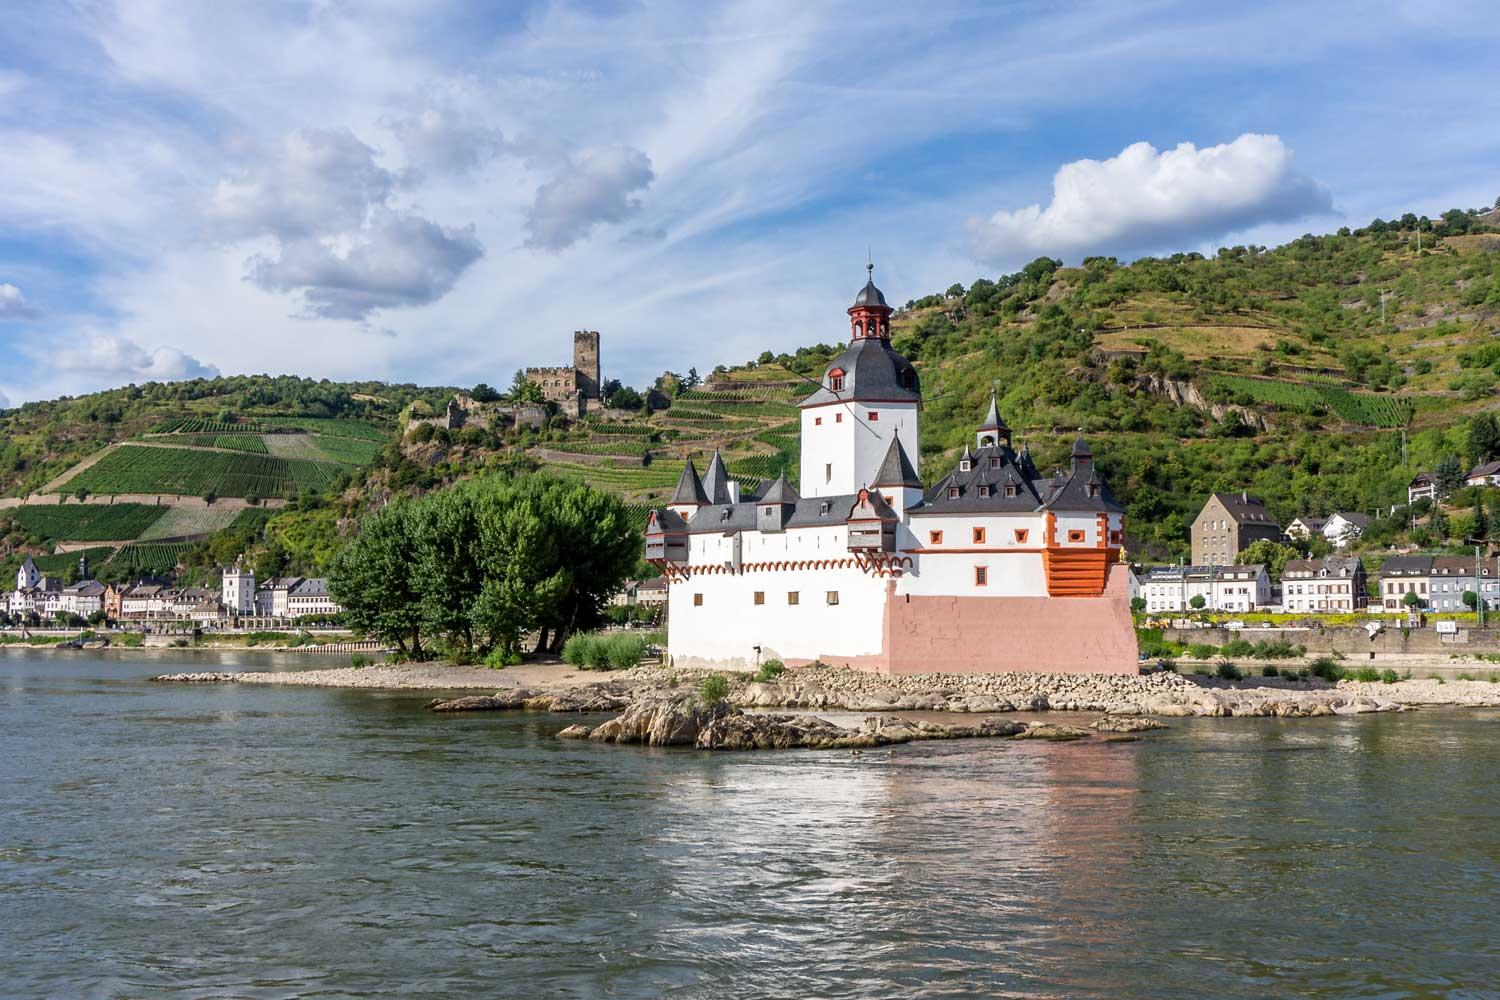 Self-guided walking vacation, Castles of the Romantic Rhine (the Rheinsteig)